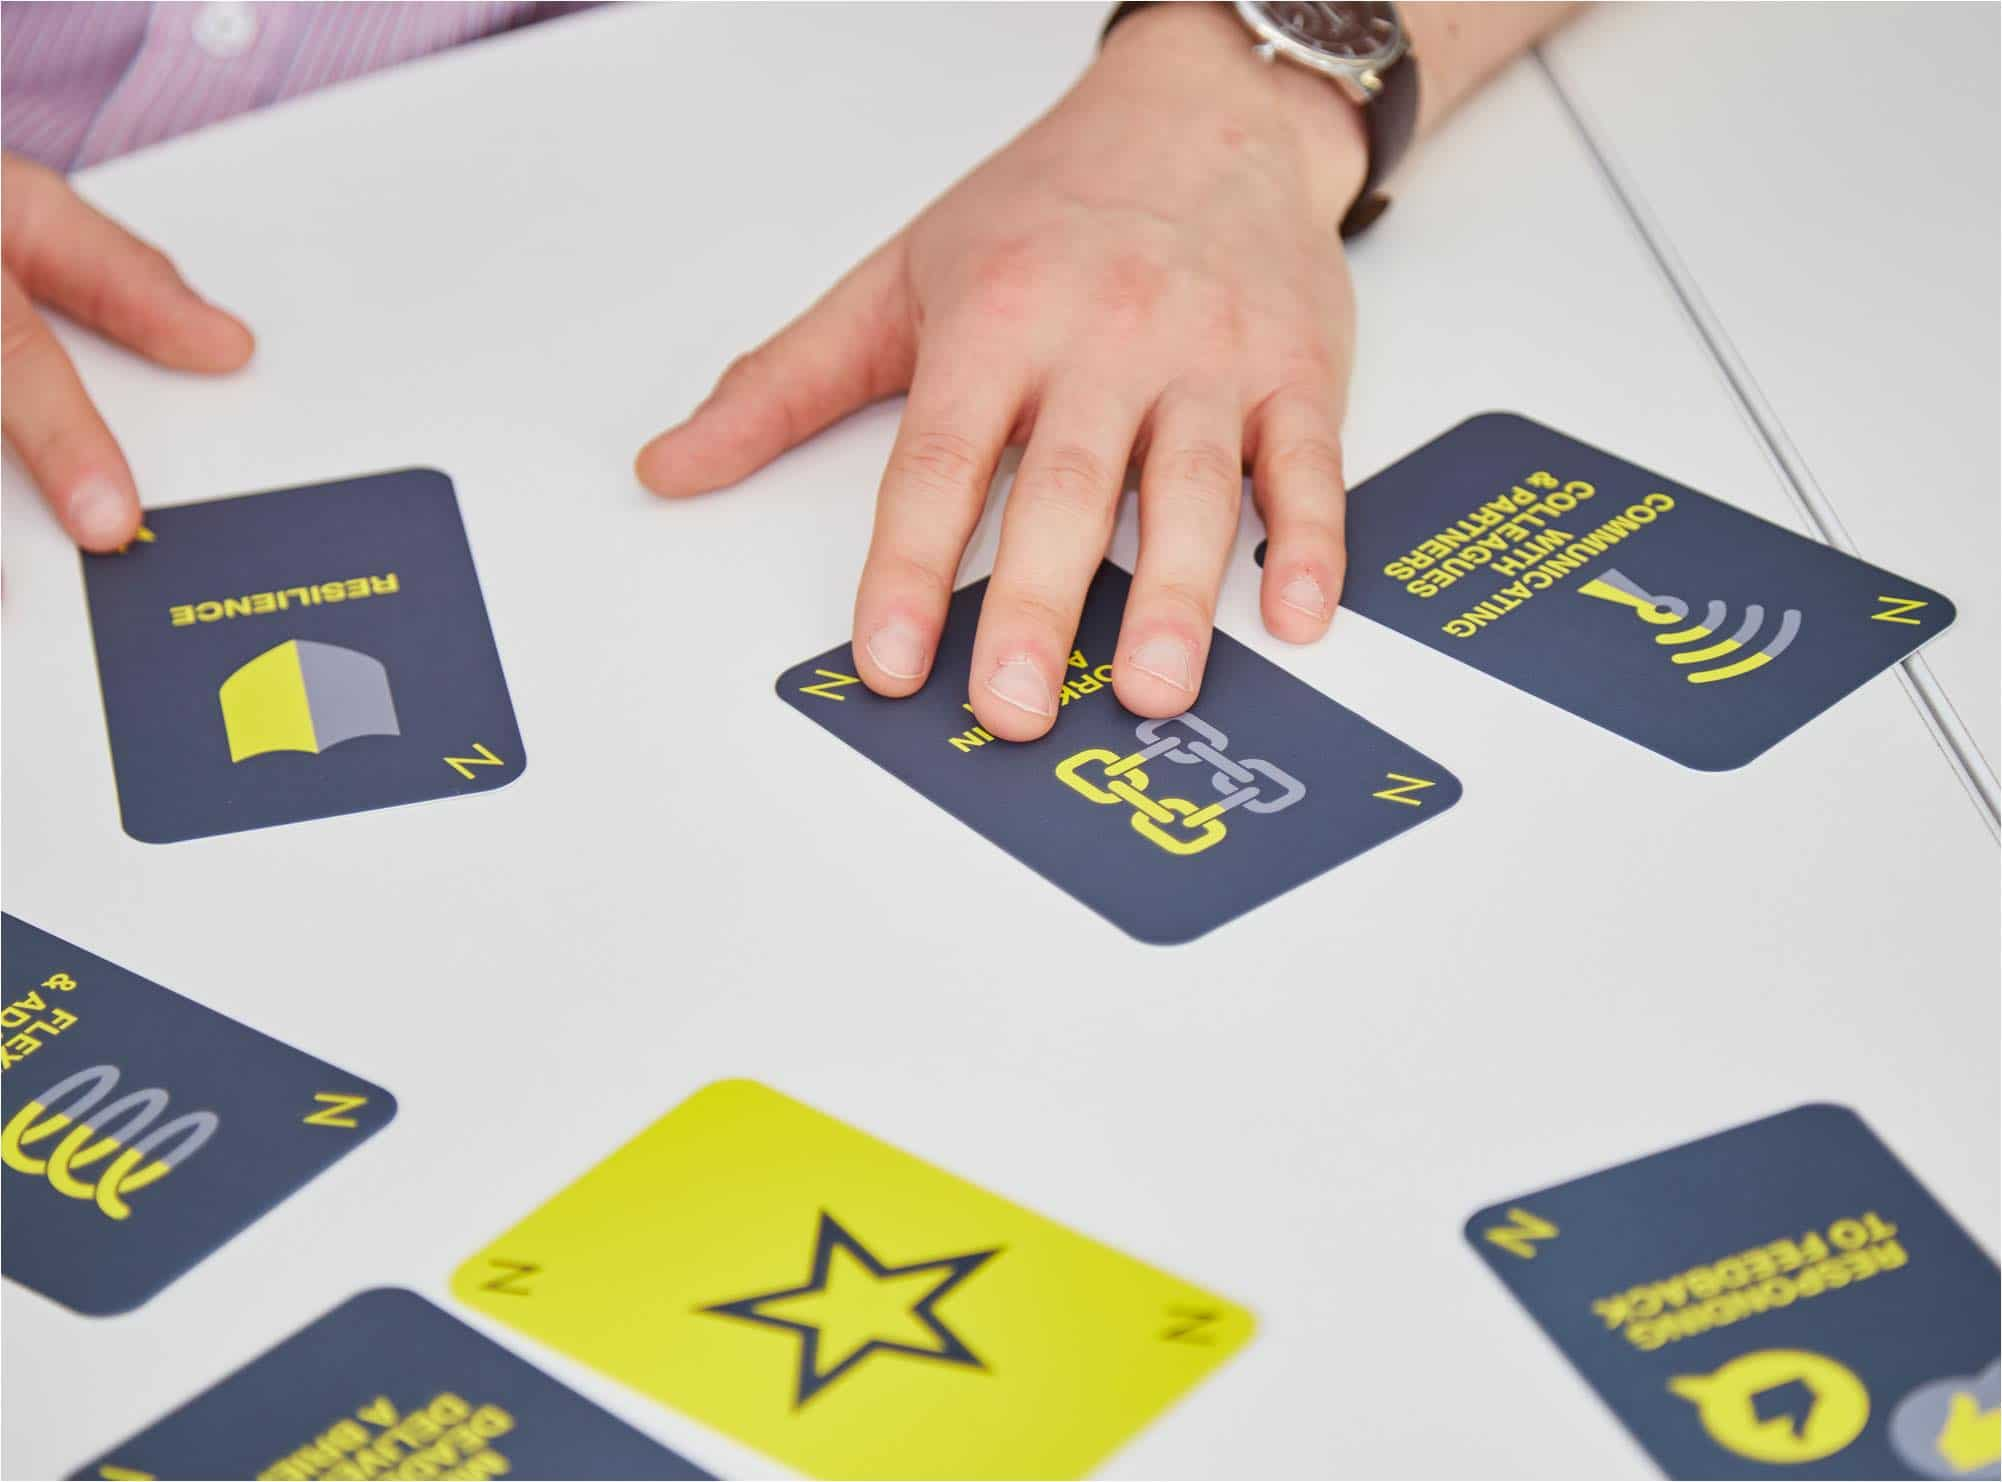 Close up photo showing NUA PROFILE Card Game